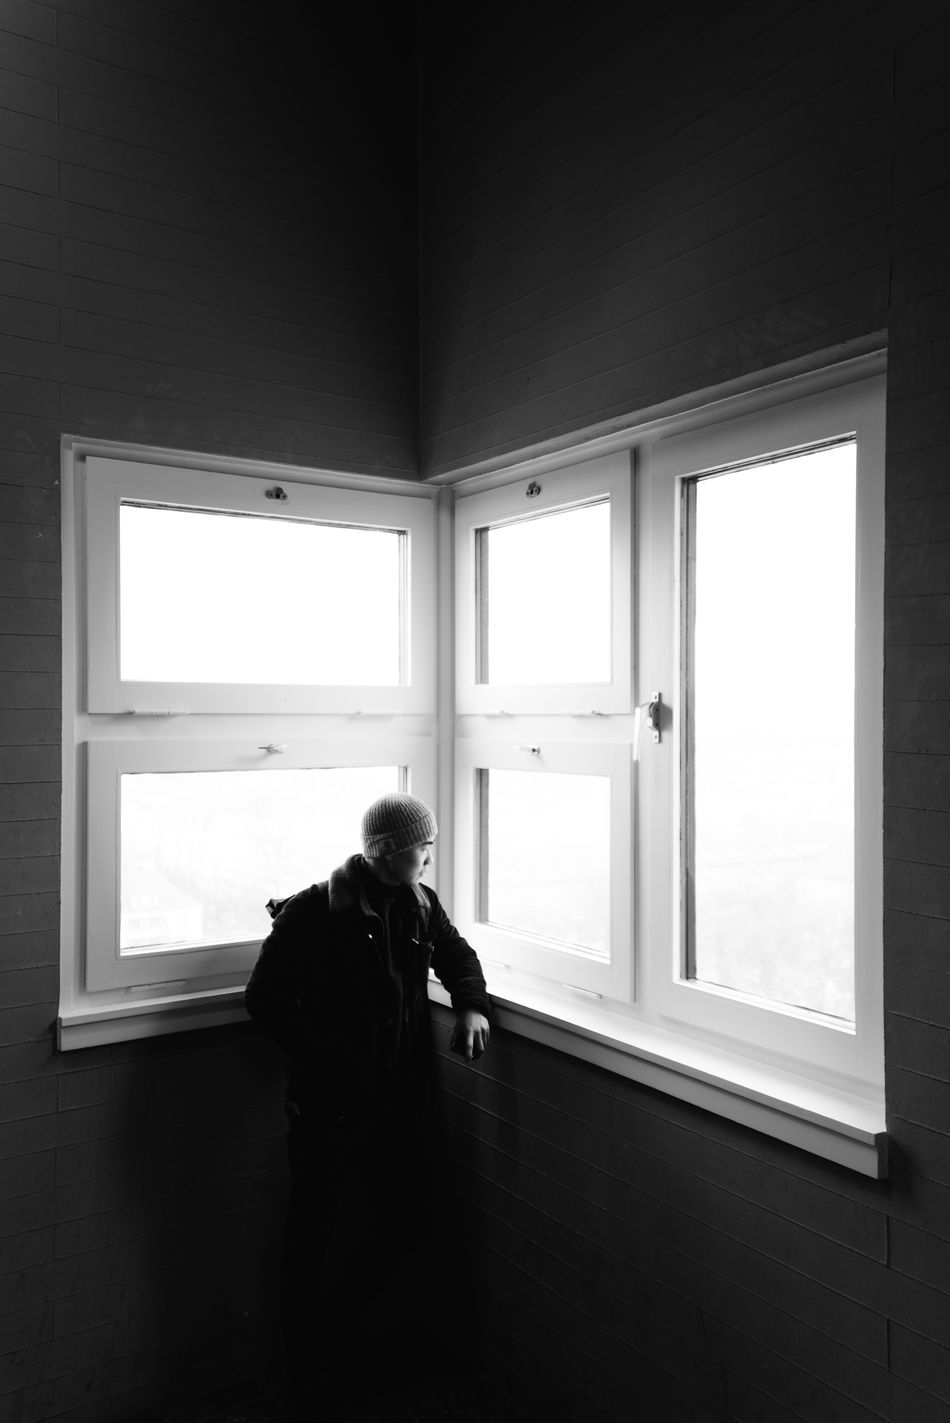 Soft Window Indoors  One Person Real People Adult Adults Only One Man Only Day EyeEmBestPics Eyeemphotography Portrait Of A Friend Portrait Shootermag Light And Shadow Lowlightleague Urban City EyeEm Best Shots Eye4photography  Architecture Sky Young Adult Warm Clothing EyeEm Gallery Welcome To Black TCPM